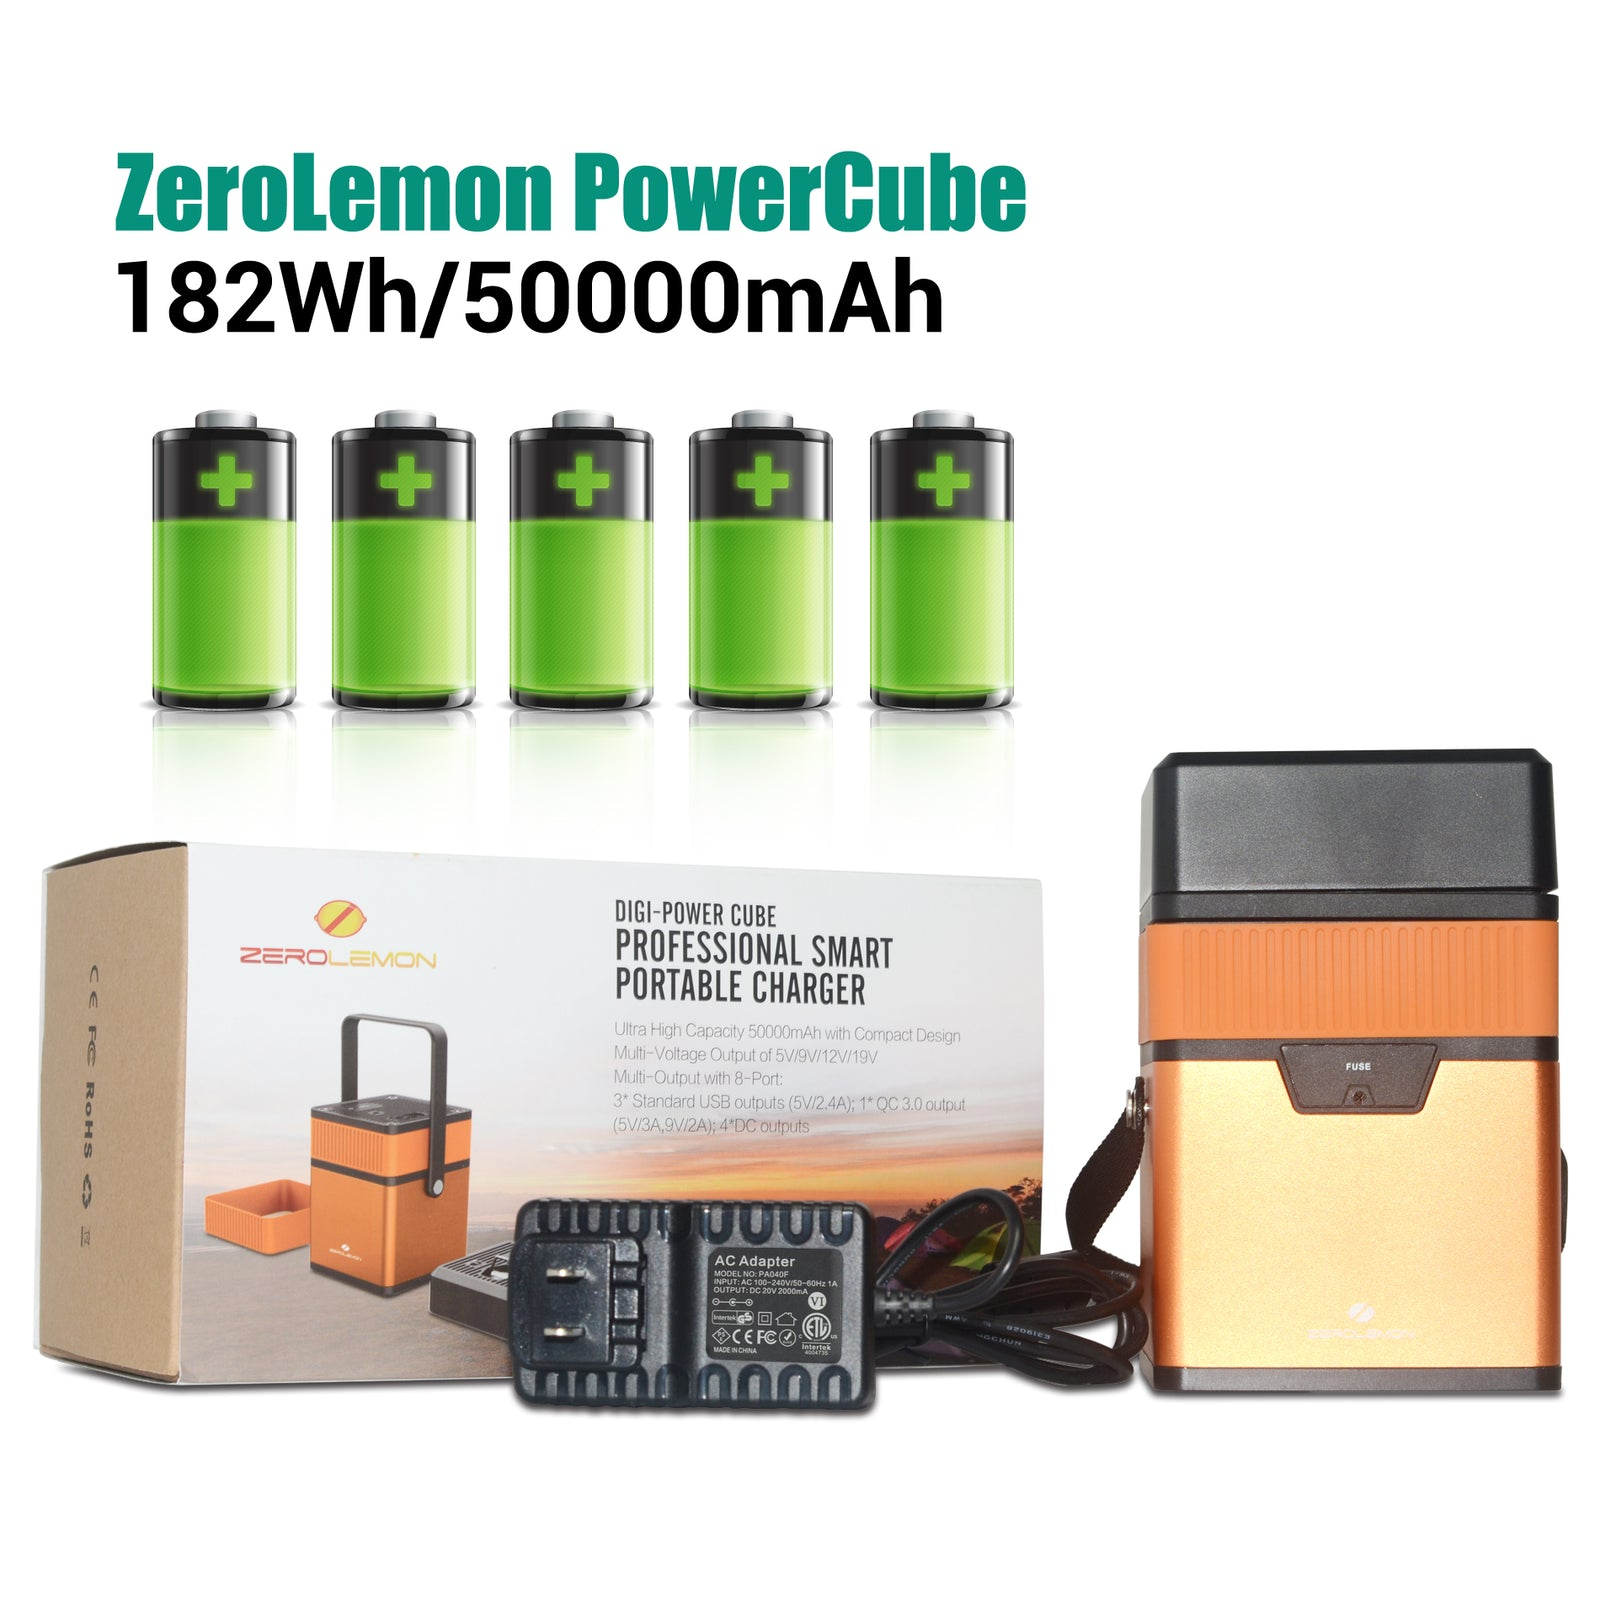 PowerCube 182Wh/50000mAh QC 3.0 Portable Power Station [Shipping to US Only]